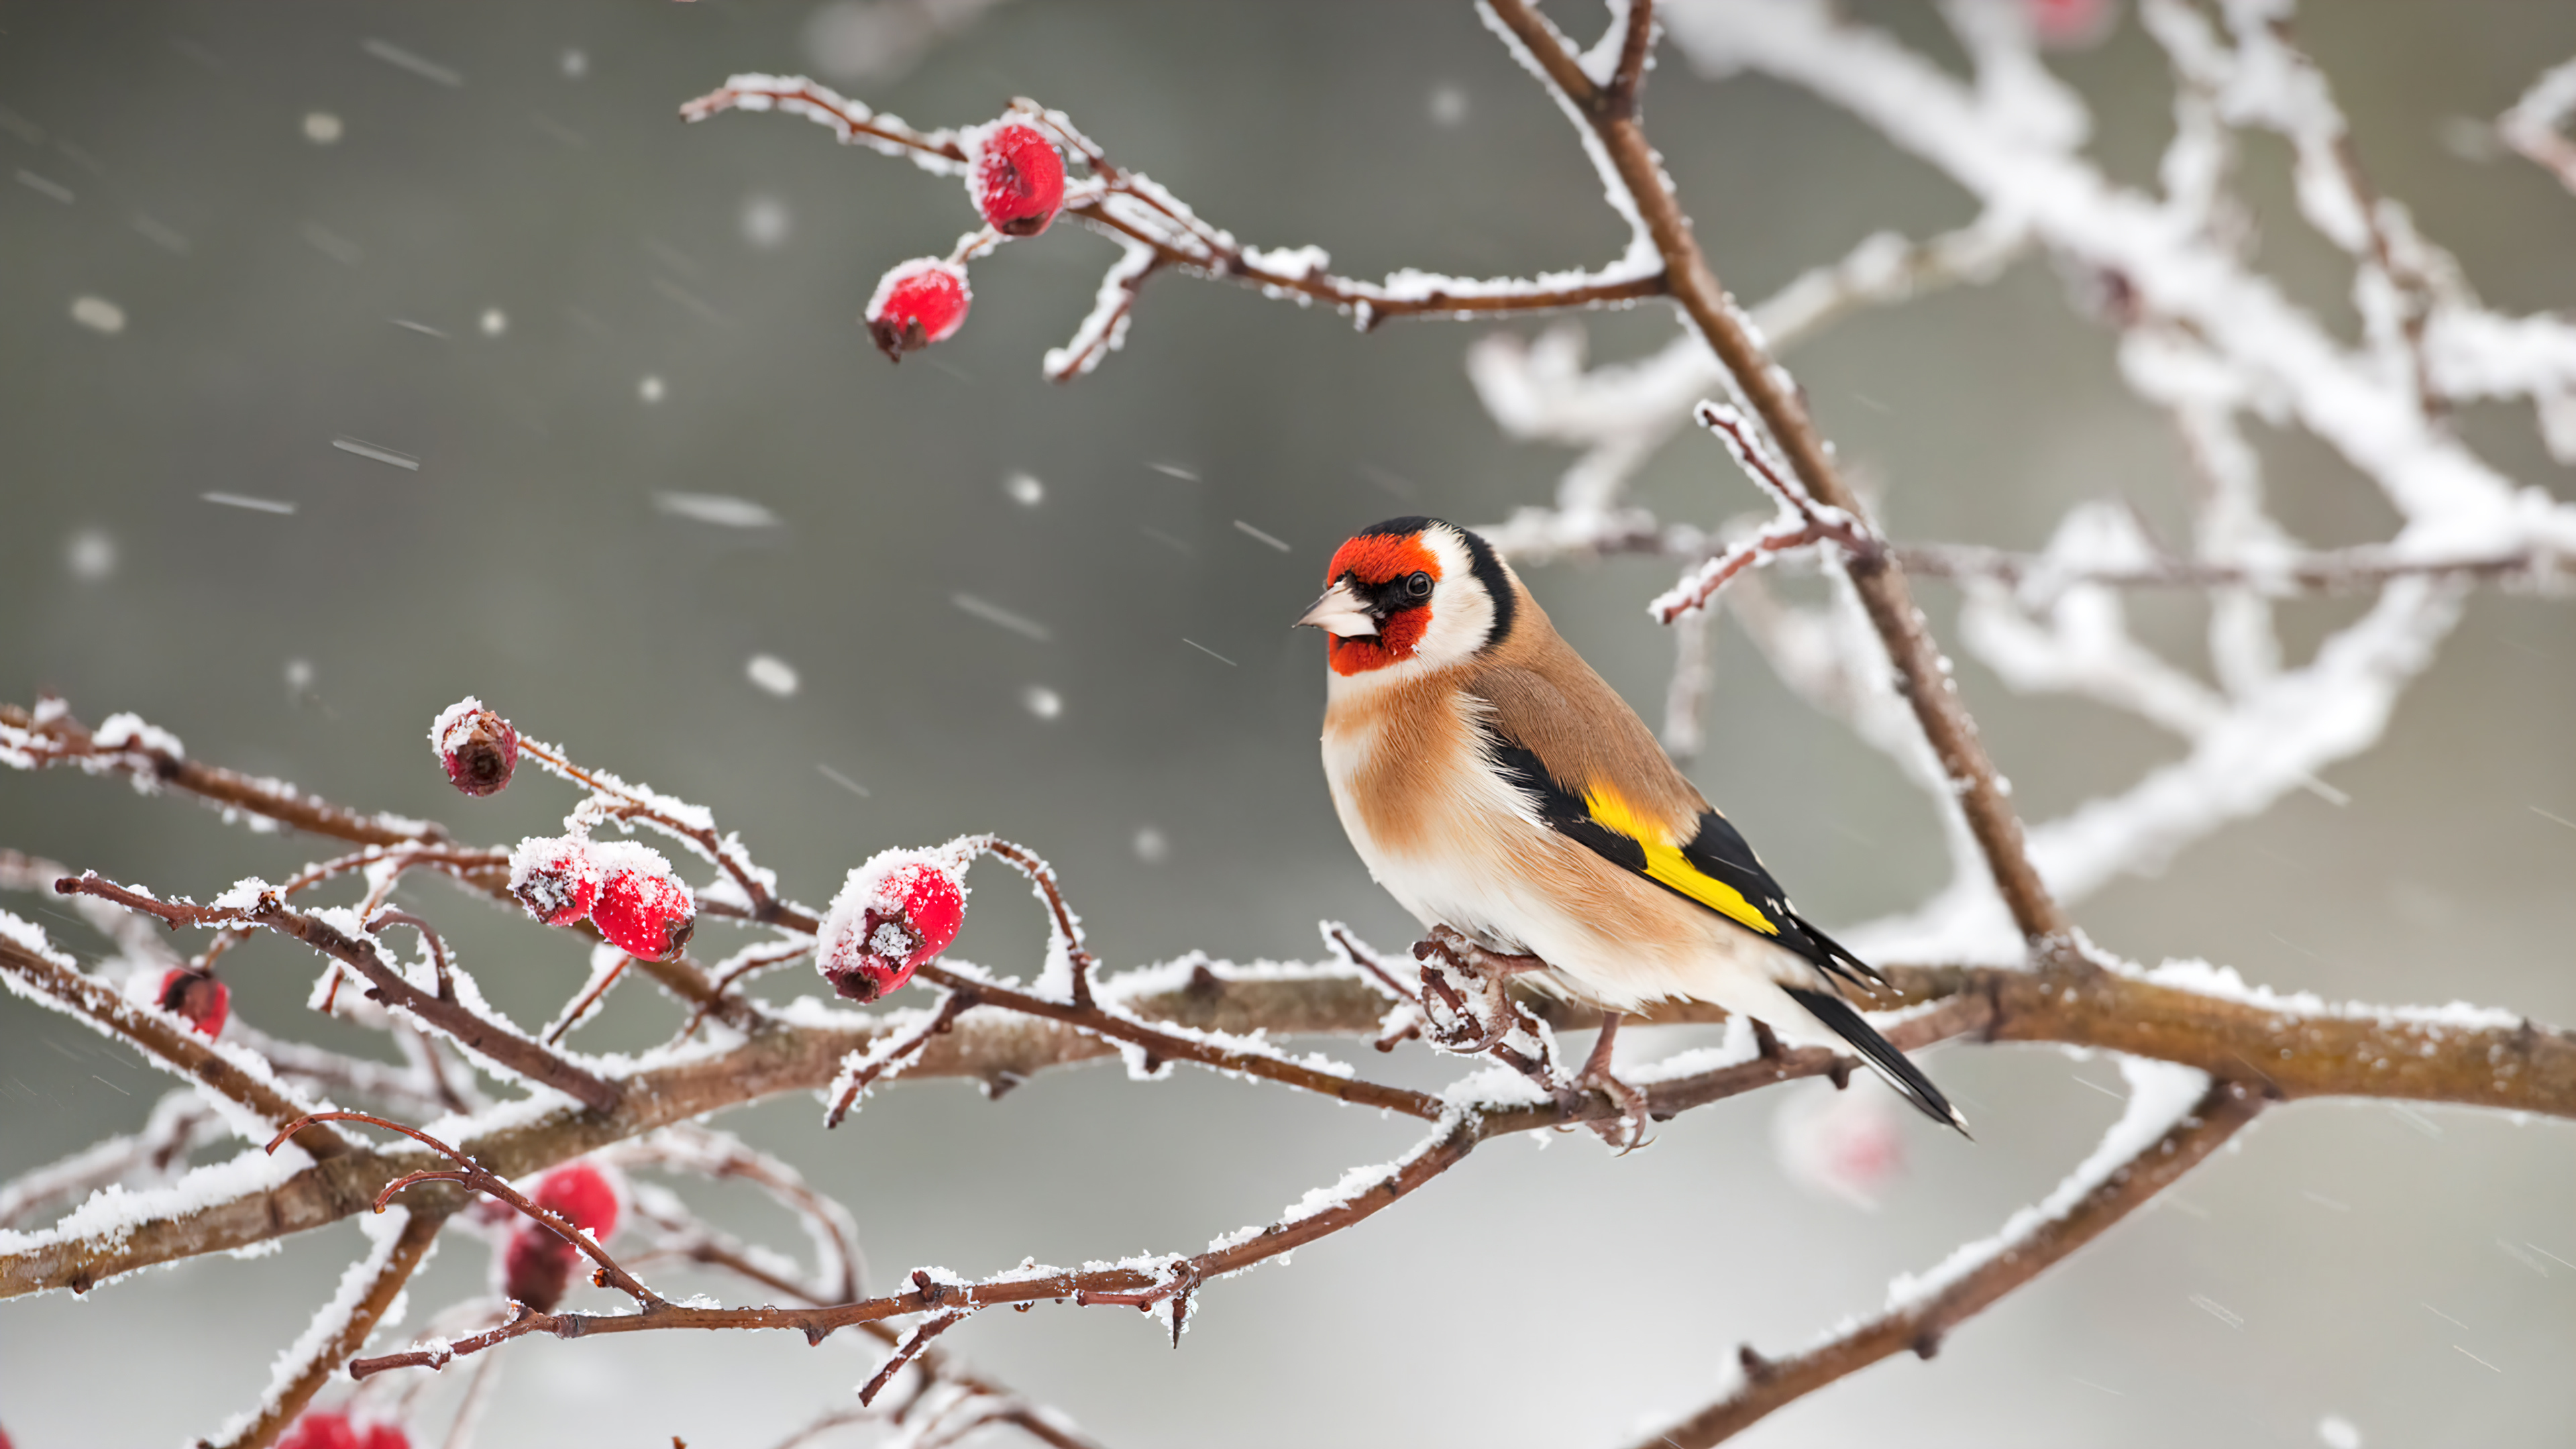 Wallpaper Bird with red head in the snow